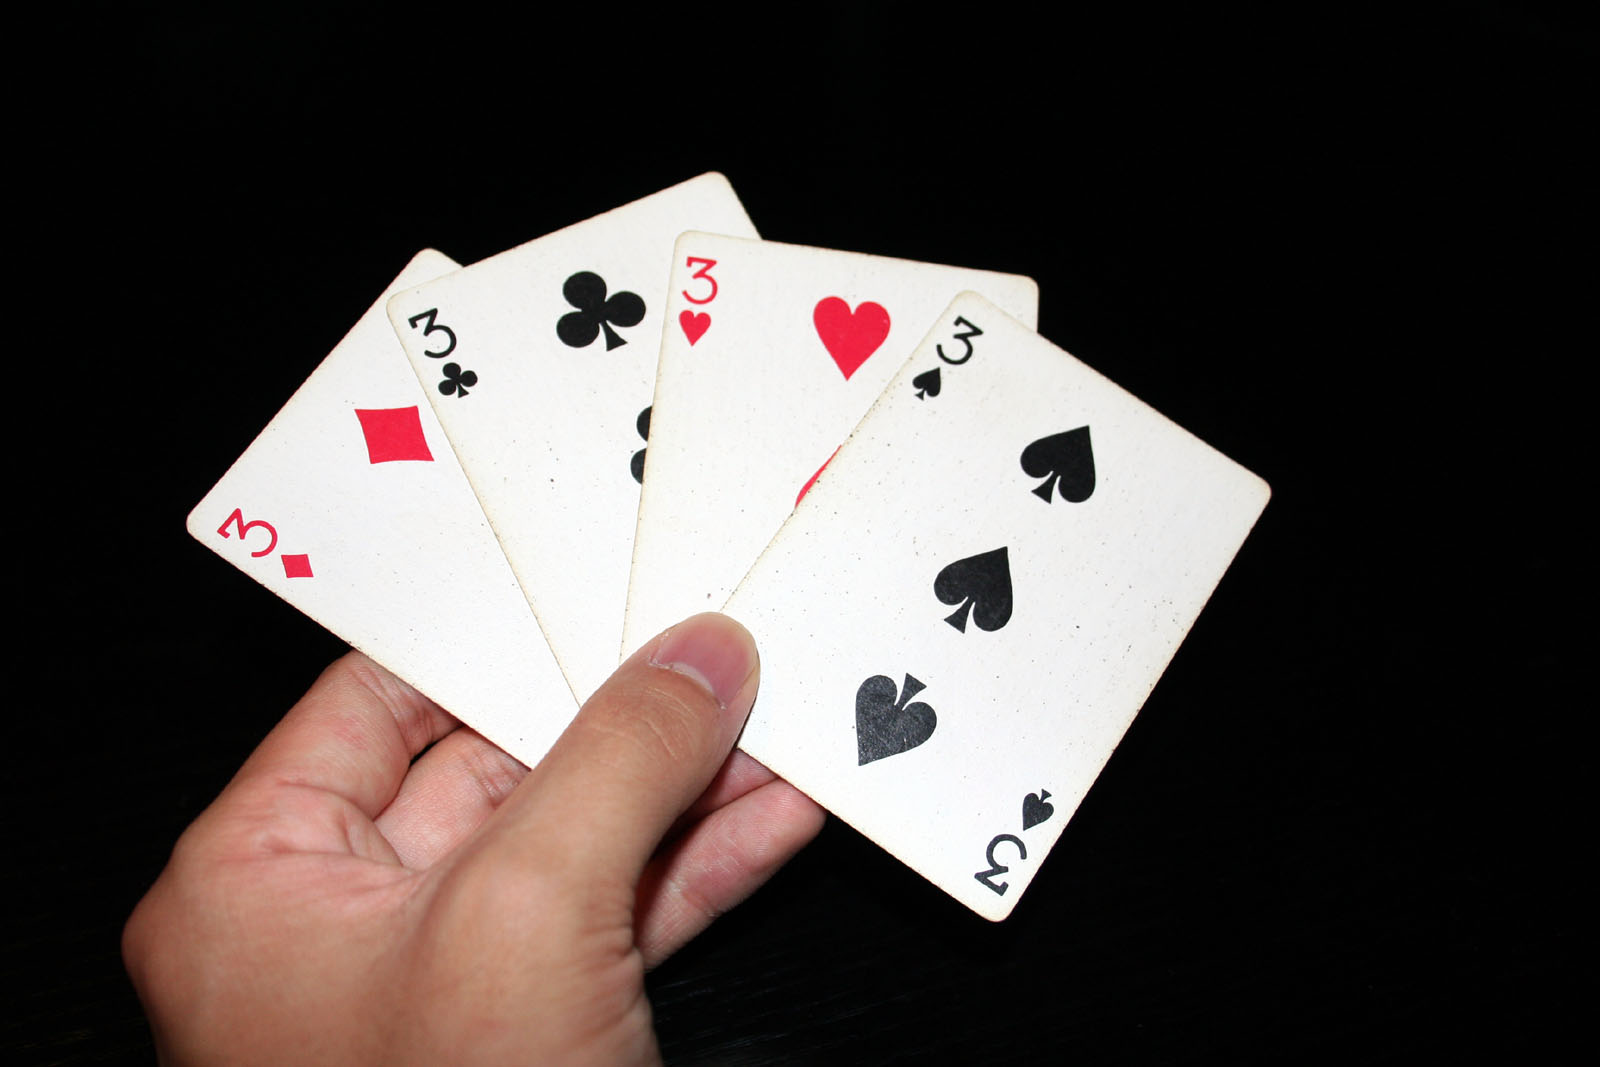 Description 3 playing cards